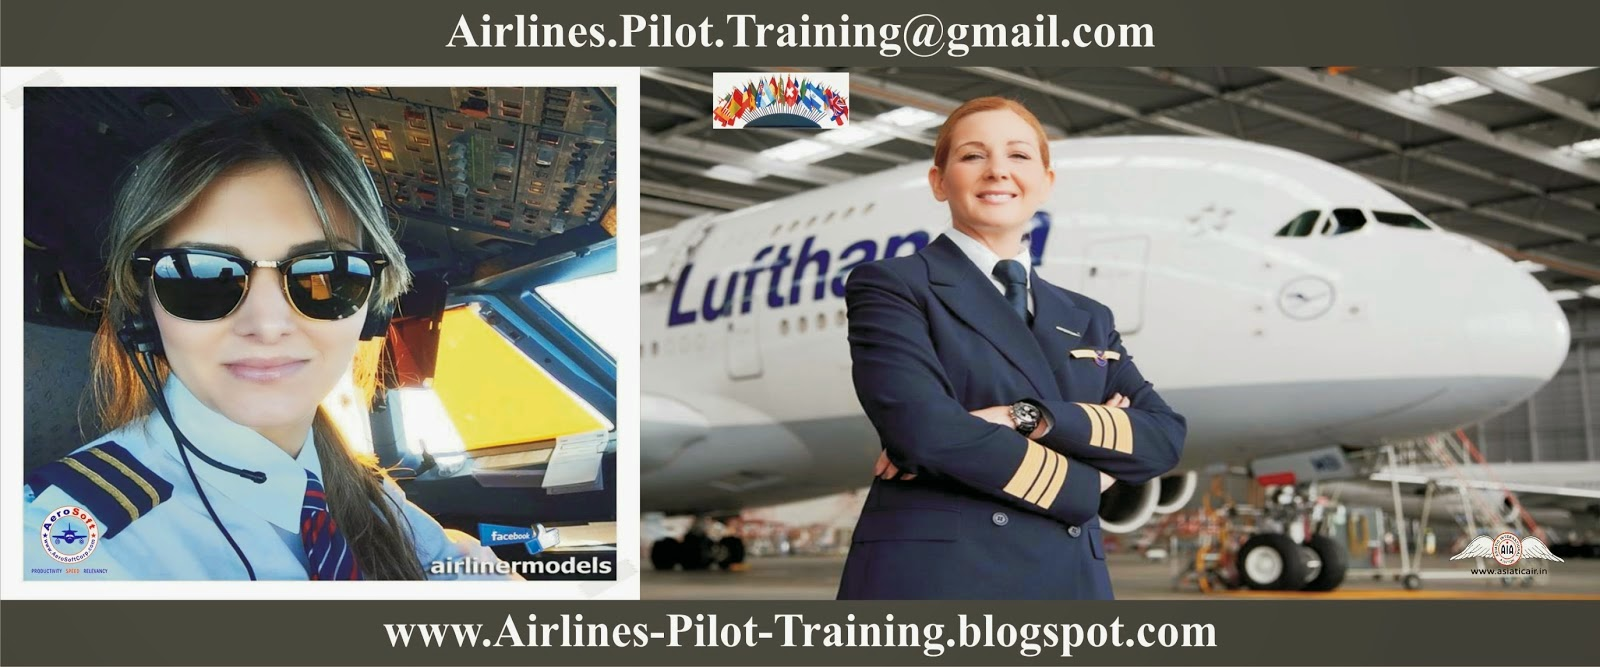 airlines-pilot-training